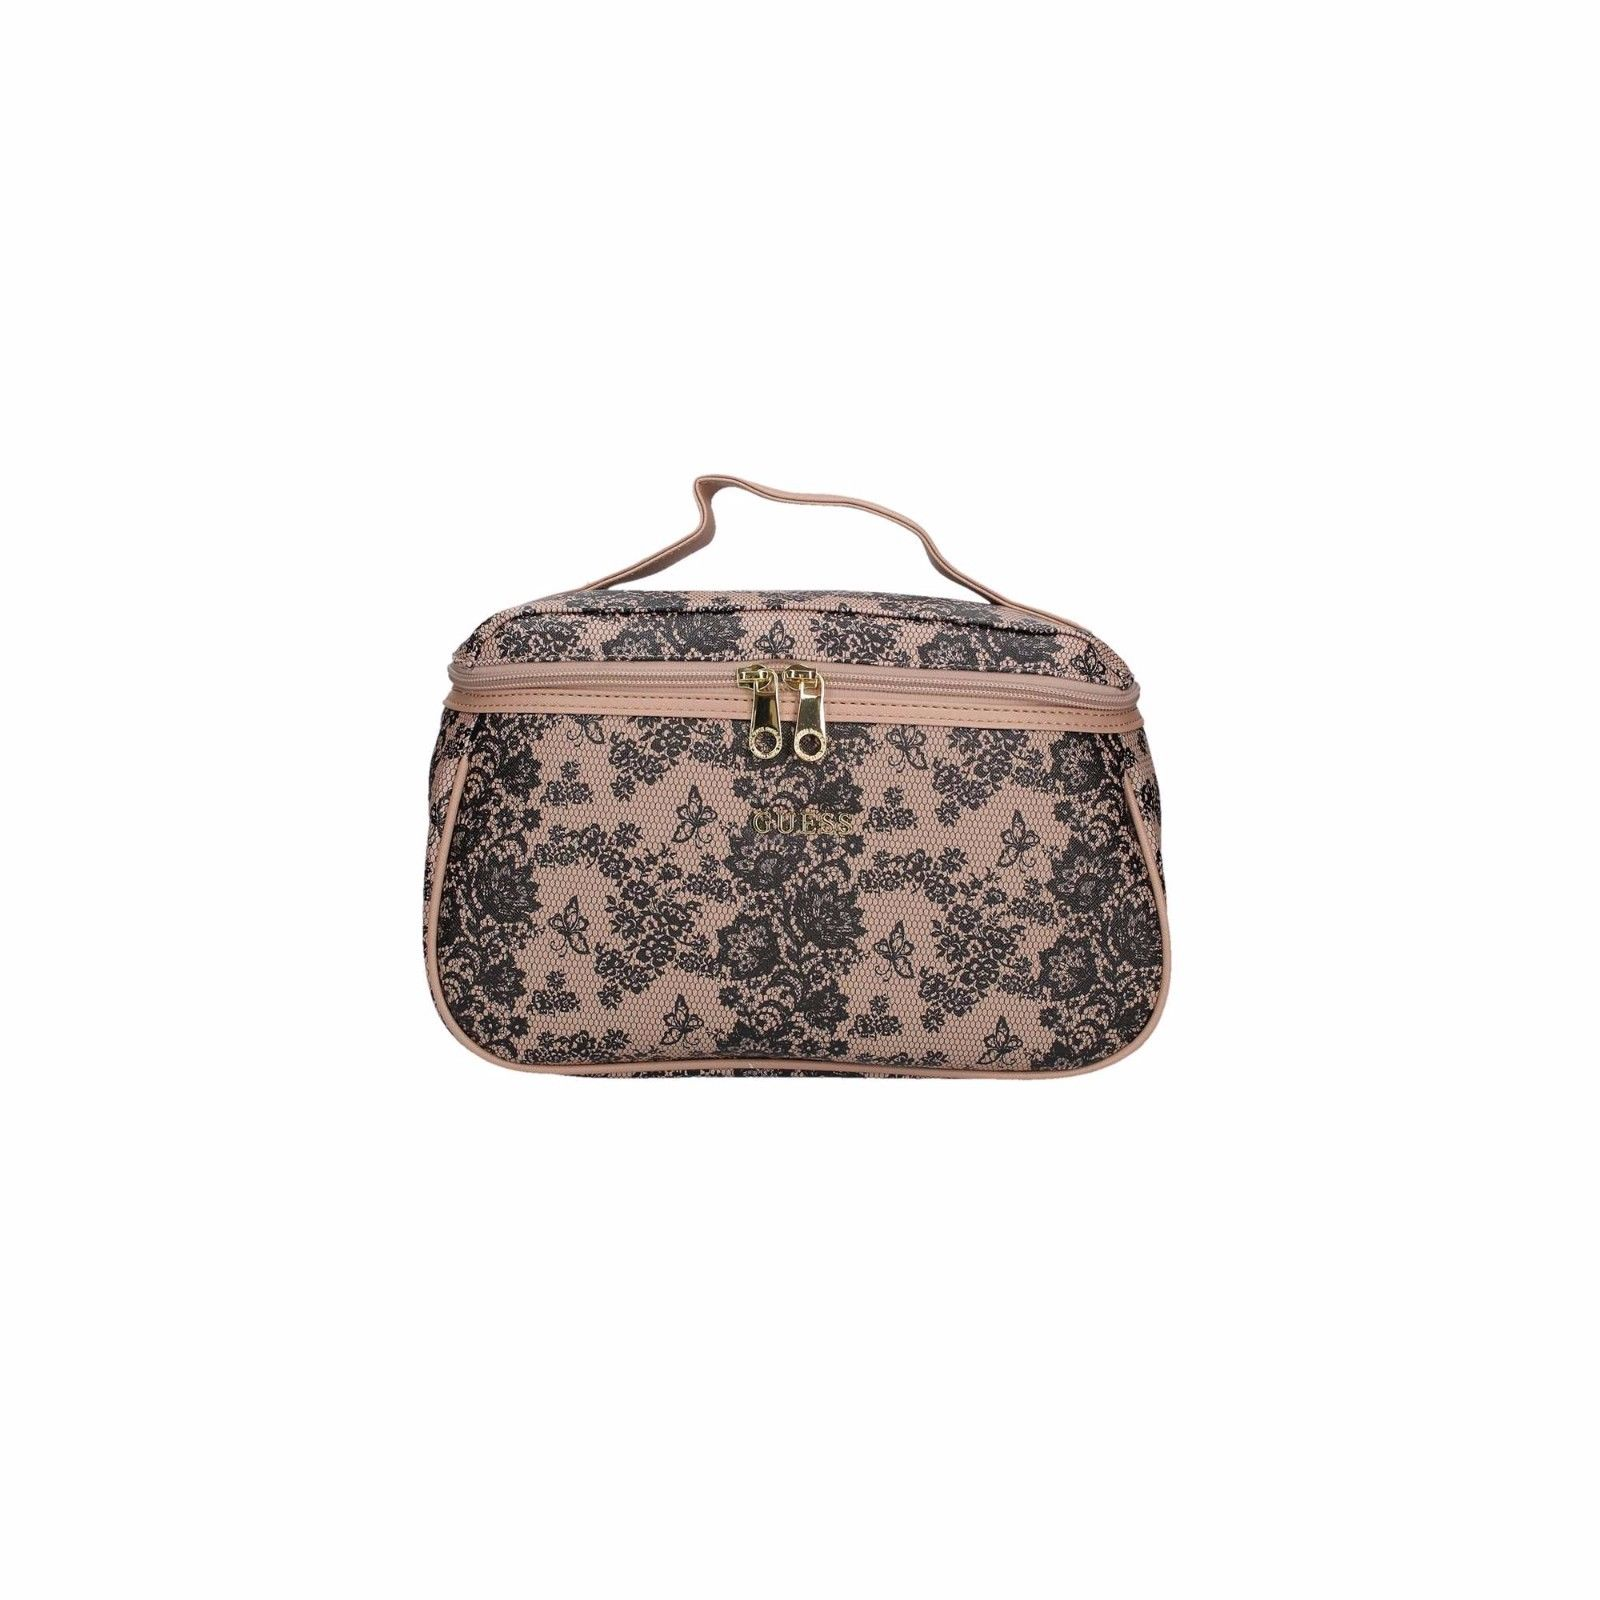 BORSA BORSE BEAUTY CASE DONNA GUESS ORIGINALE PWVAHIP7460 BAG A/I 2016/17 NEW